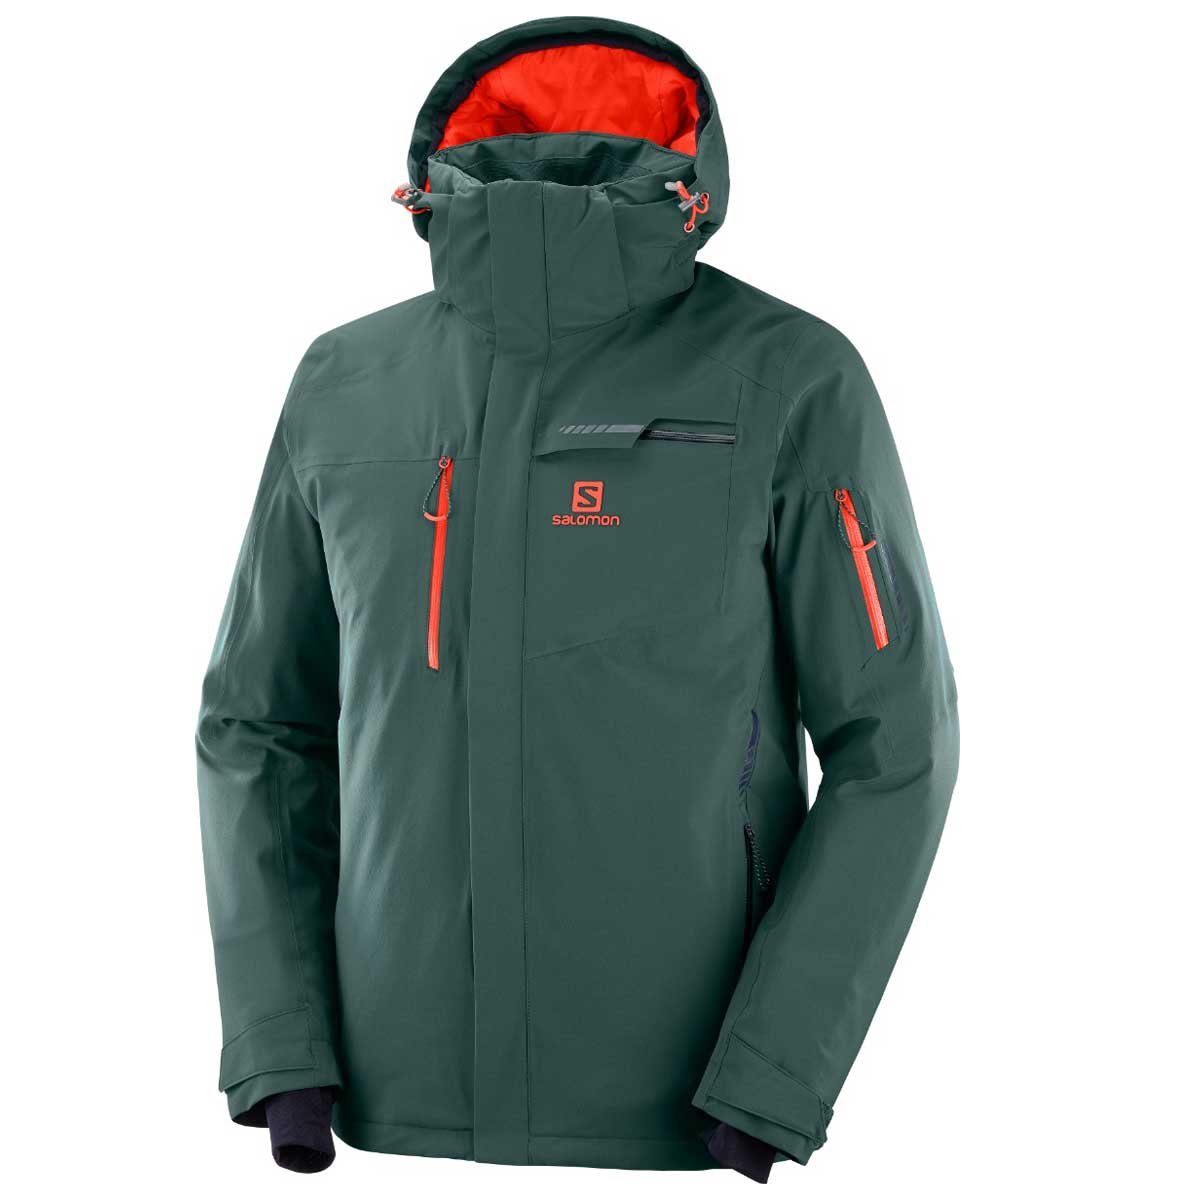 Salomon Men's Brilliant Jacket in Green Gables